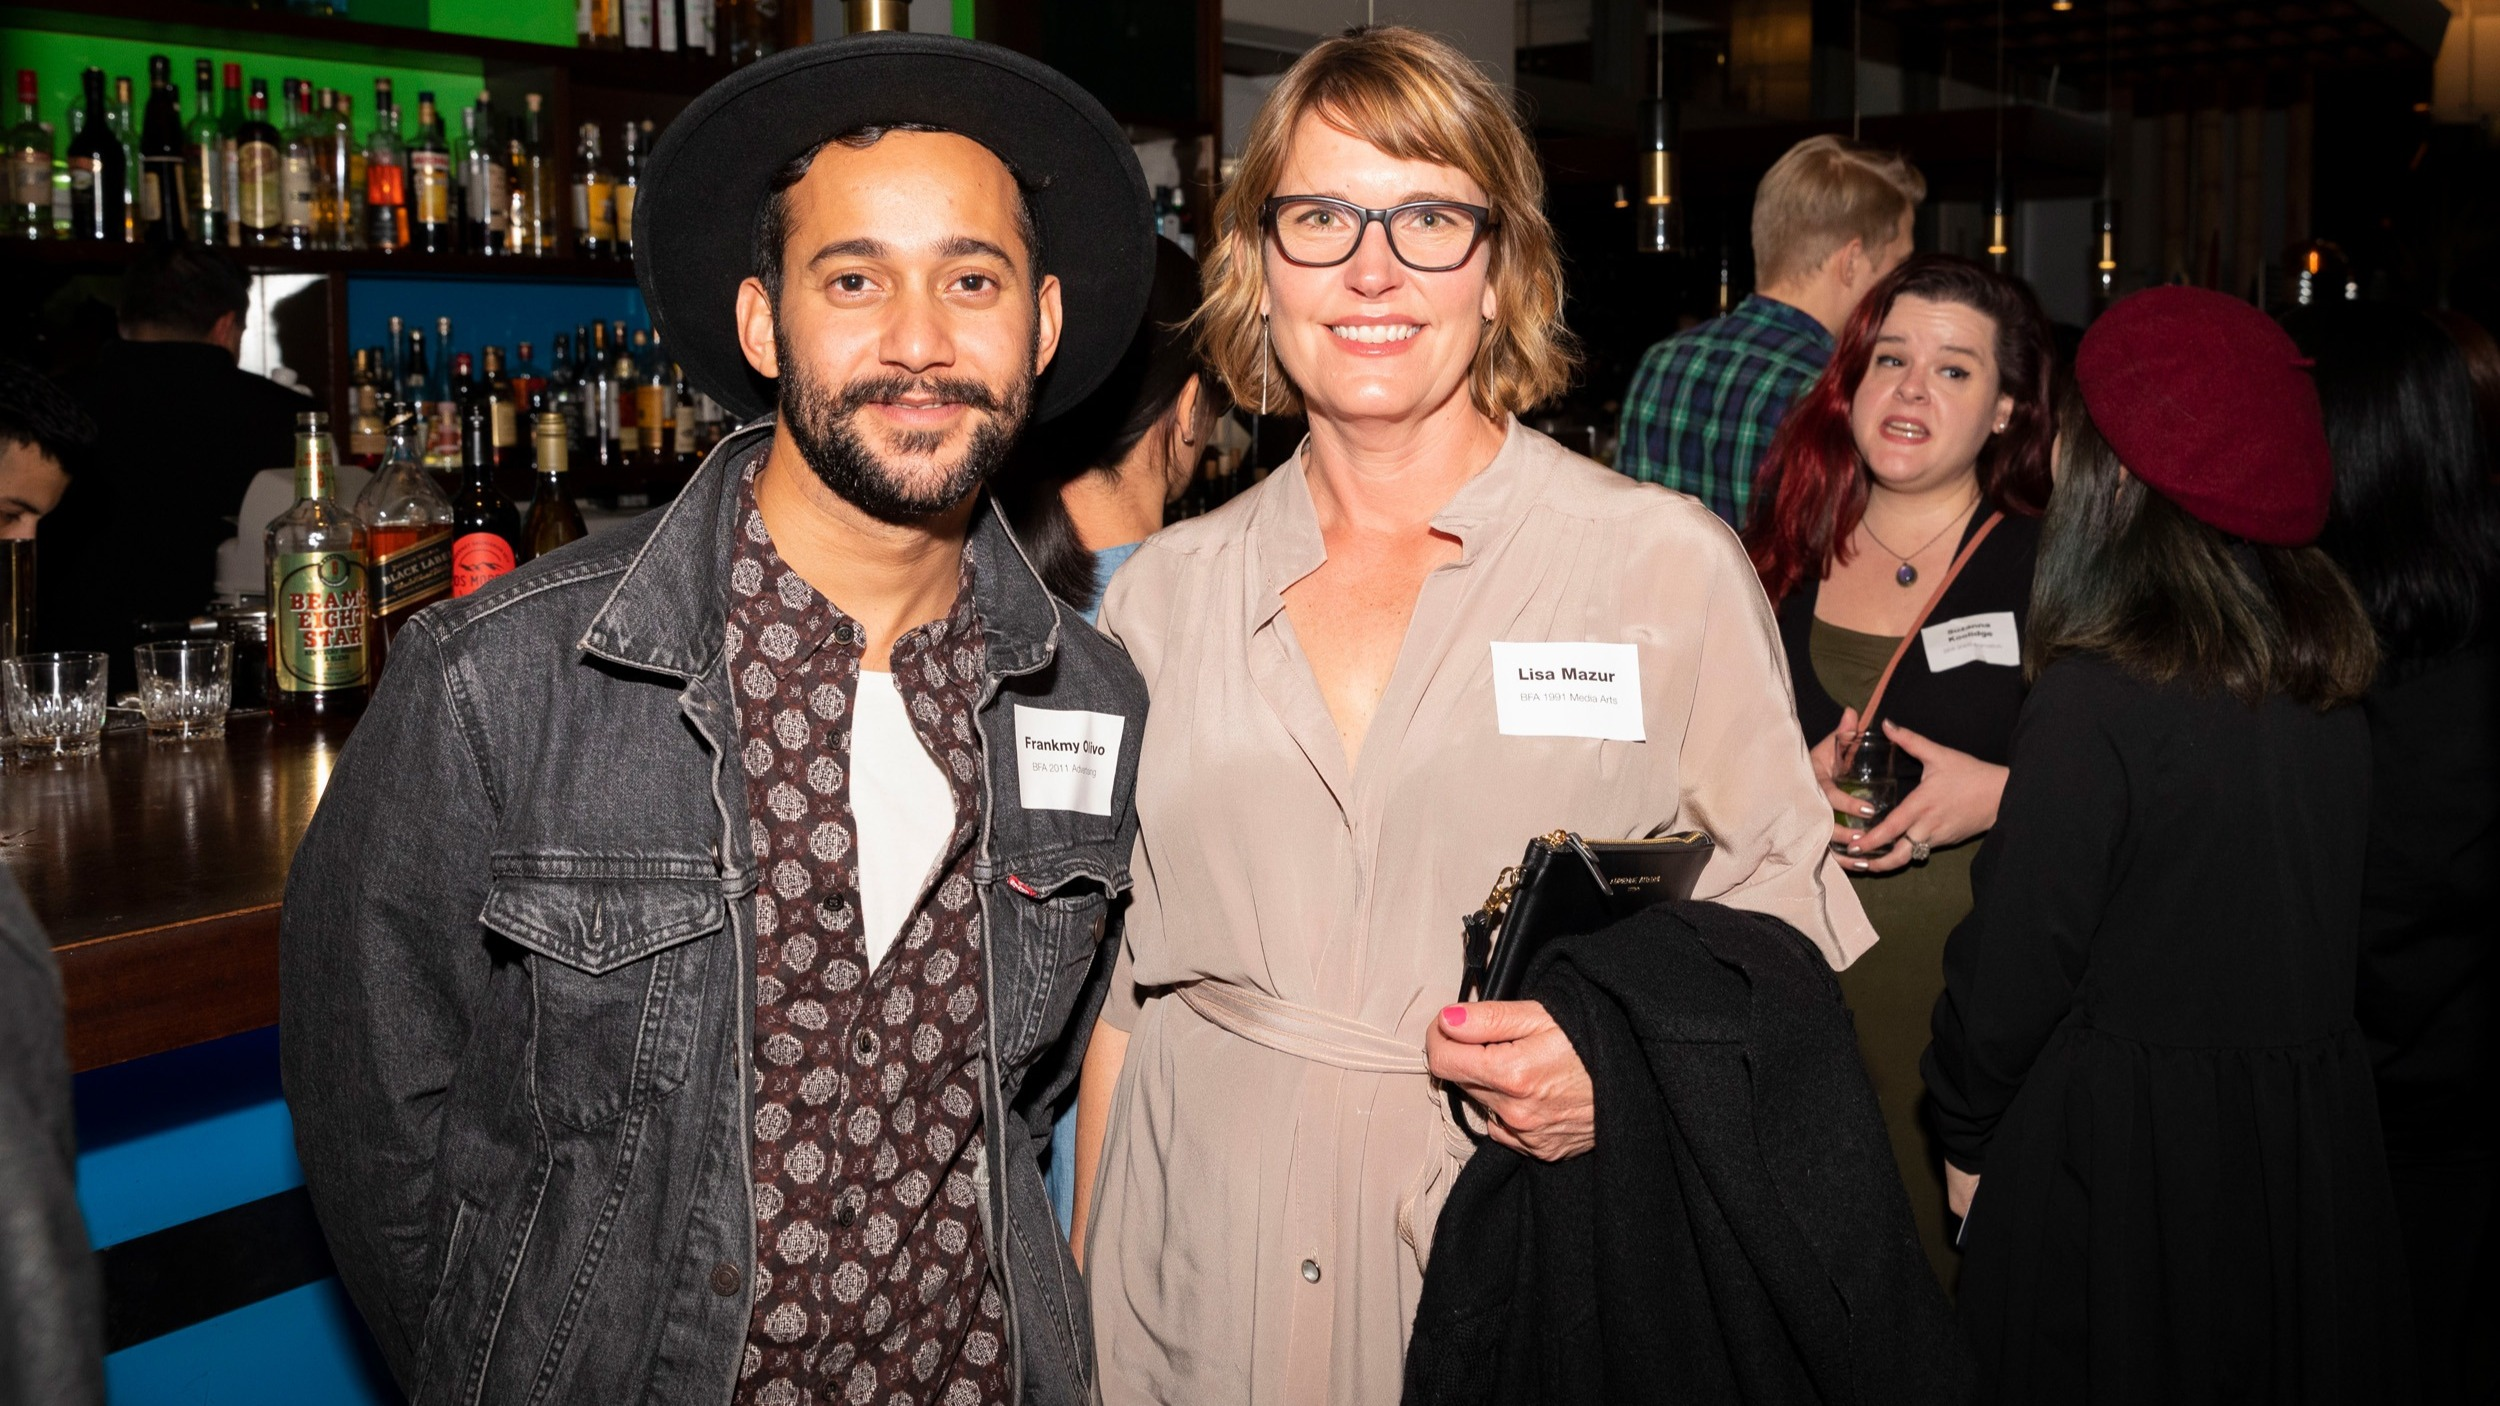 Two SVA alumni at a networking event in San Francisco.